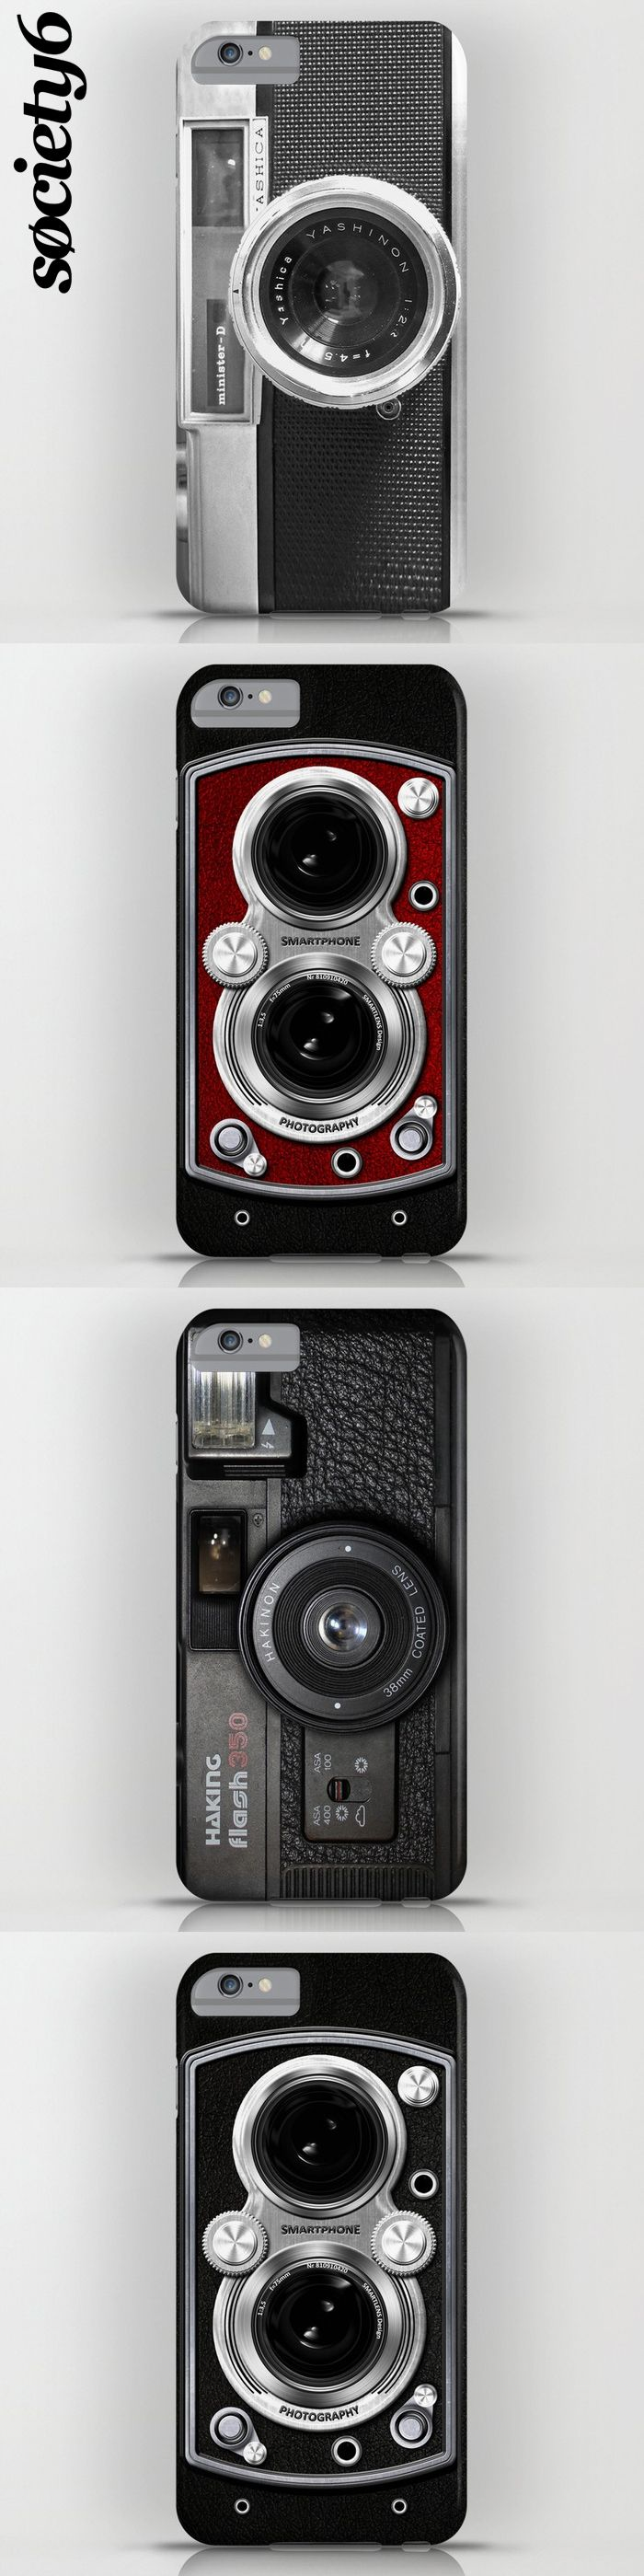 A collection of cool, retro camera cases for iPhone and Samsung #iphonecase #iphone #samsung #case #retro #vintage #camera